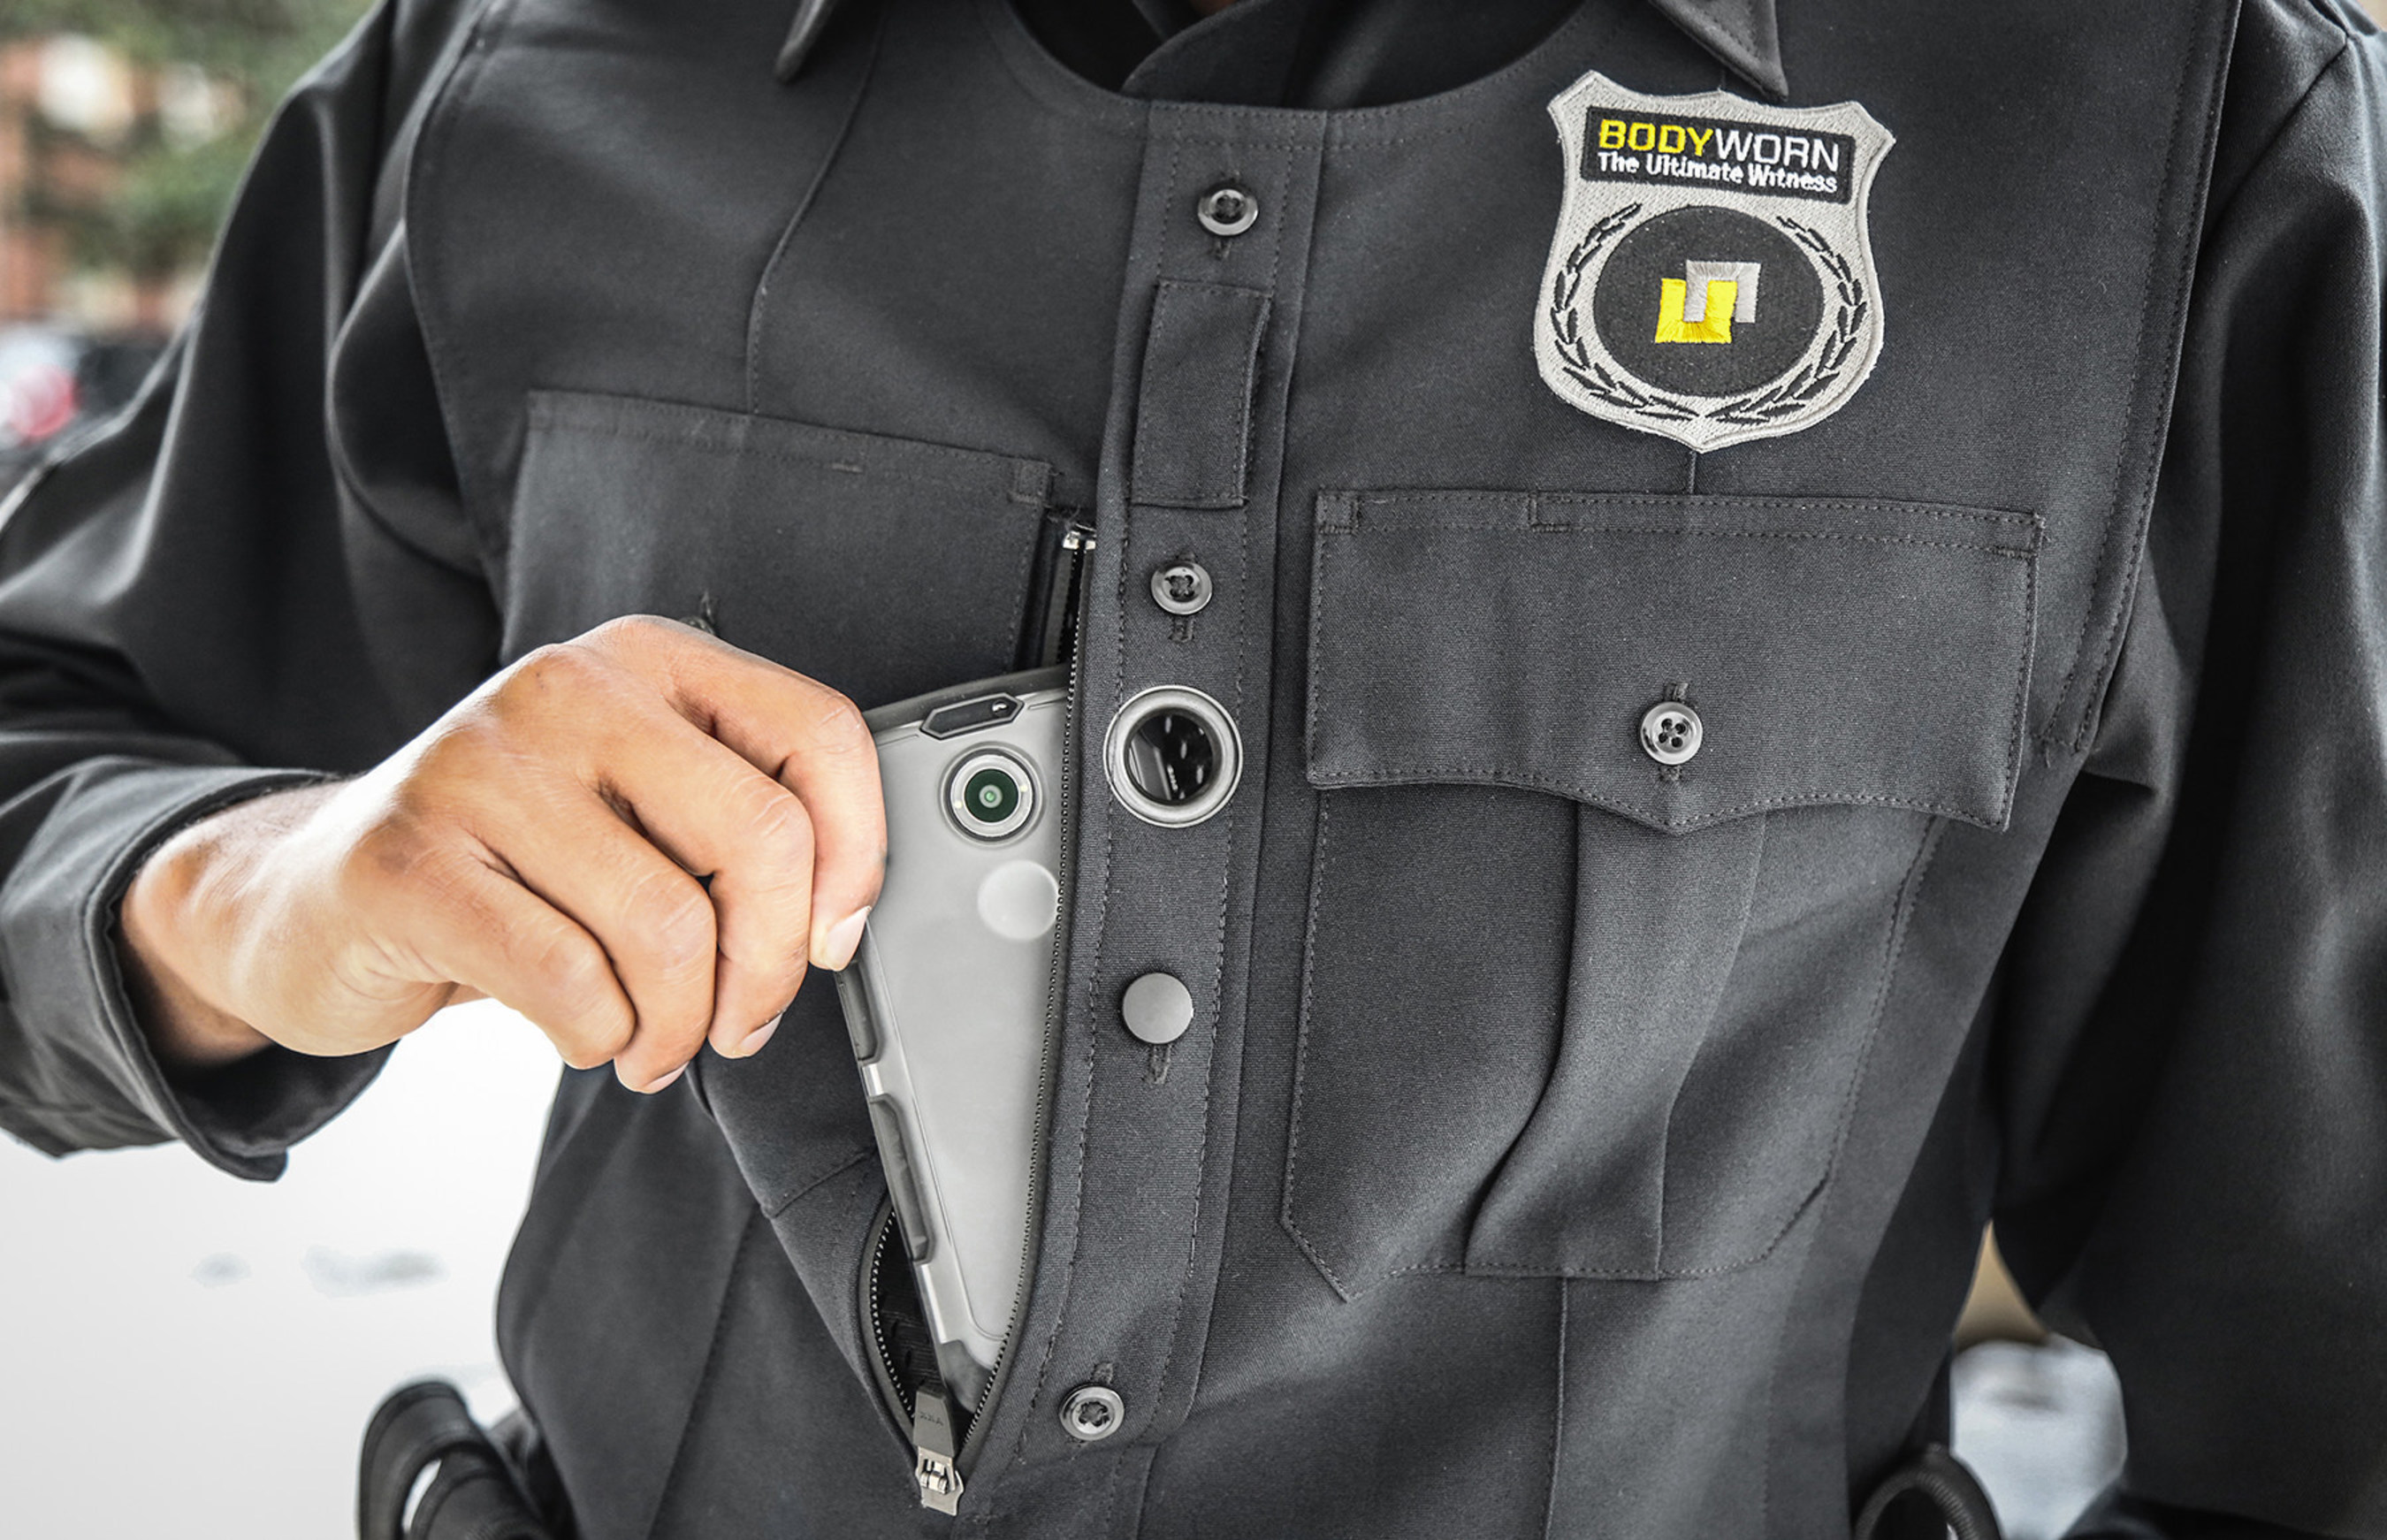 Utility's BodyWorn(TM) is the only police body camera system that provides policy-based recording and automatic video redaction